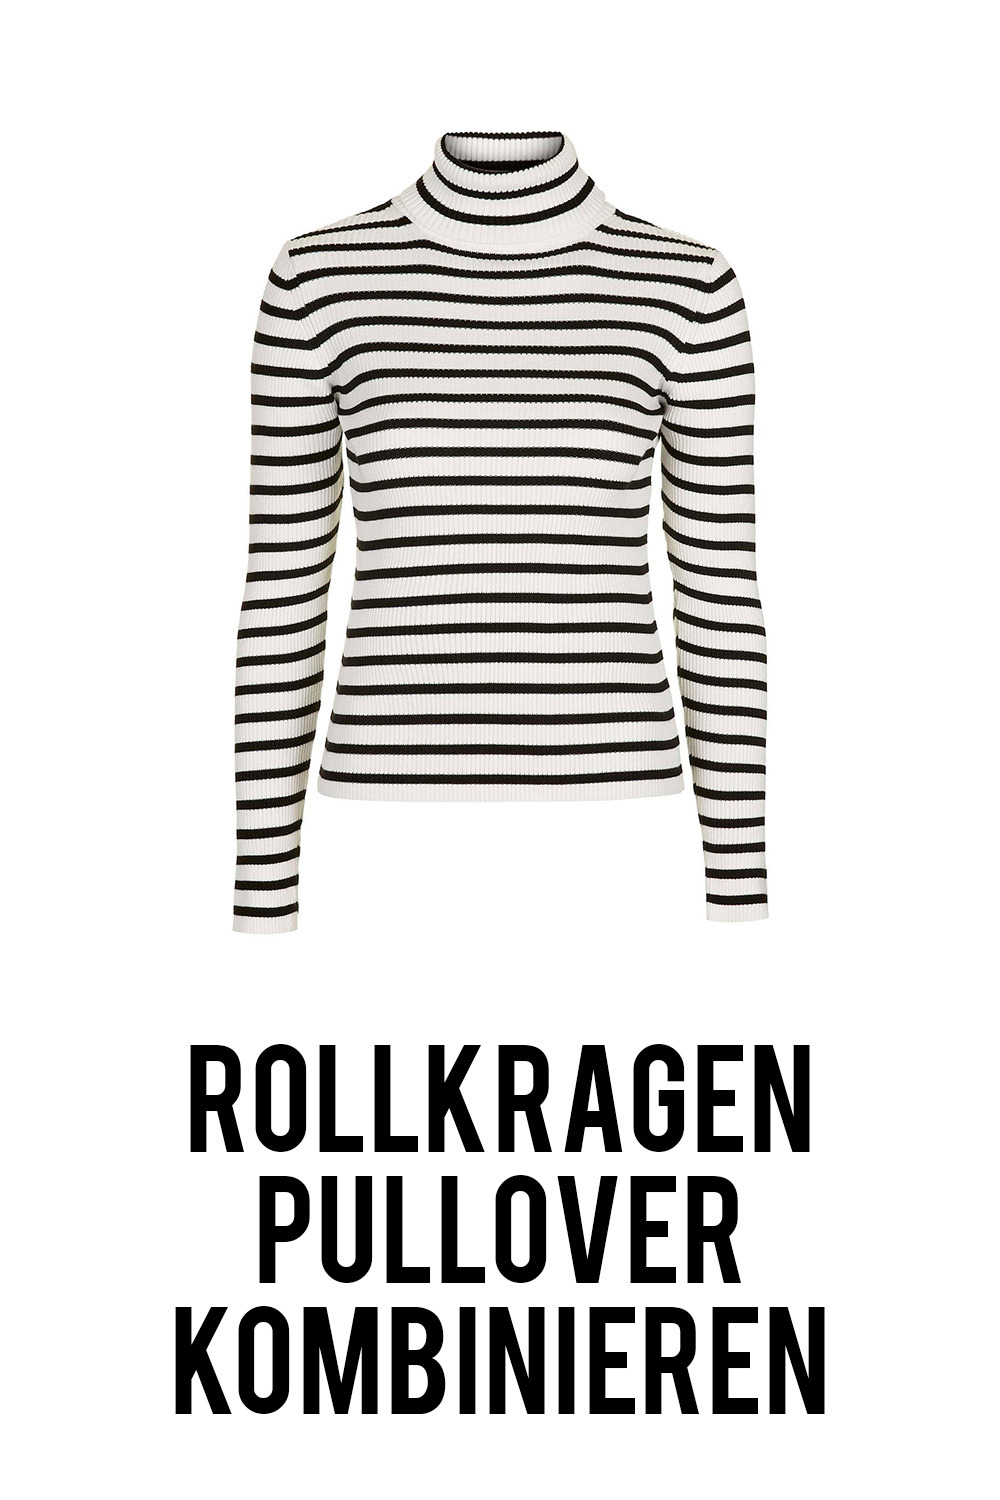 who is mocca, modeblogger, fashionblogger, rollkragen pullover kombinieren, lookbook, outfit idee, streetstyle, whoismocca.com